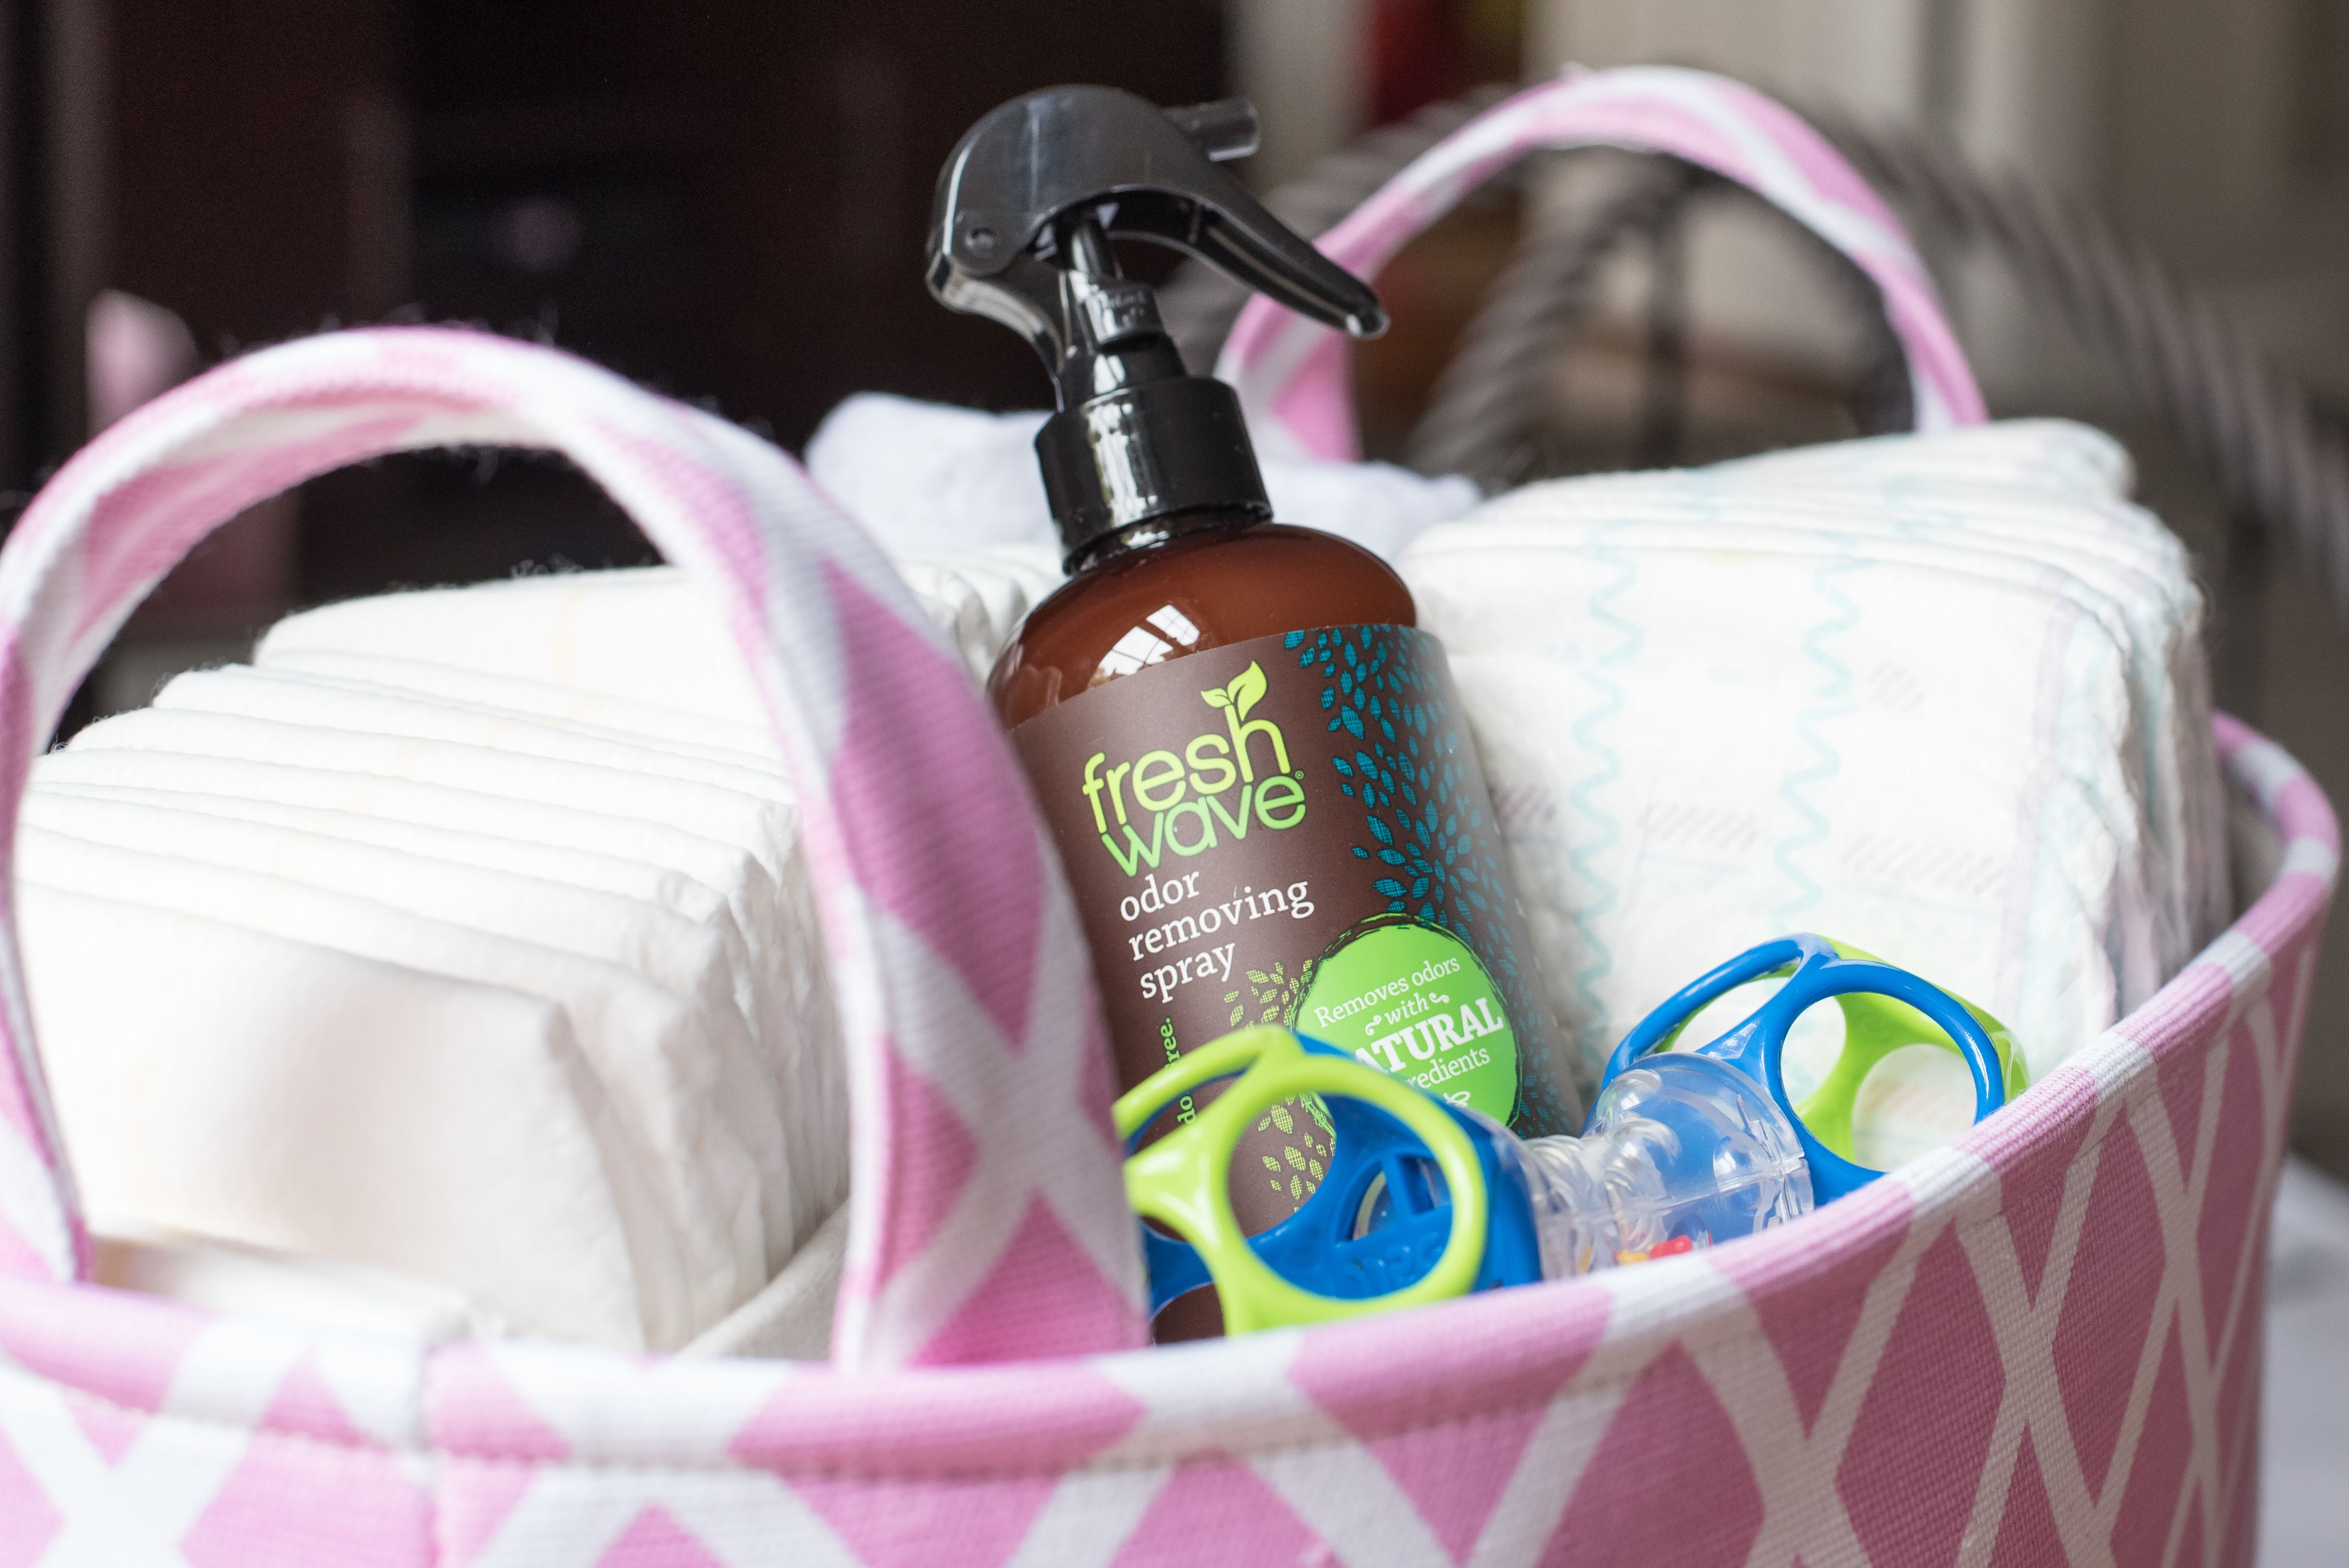 Fresh Wave products work not by masking smells with scents and perfumes, but by using water and natural plant extracts like lime, pine needle, aniseed, clove and cedarwood to actually remove odor molecules from the air.